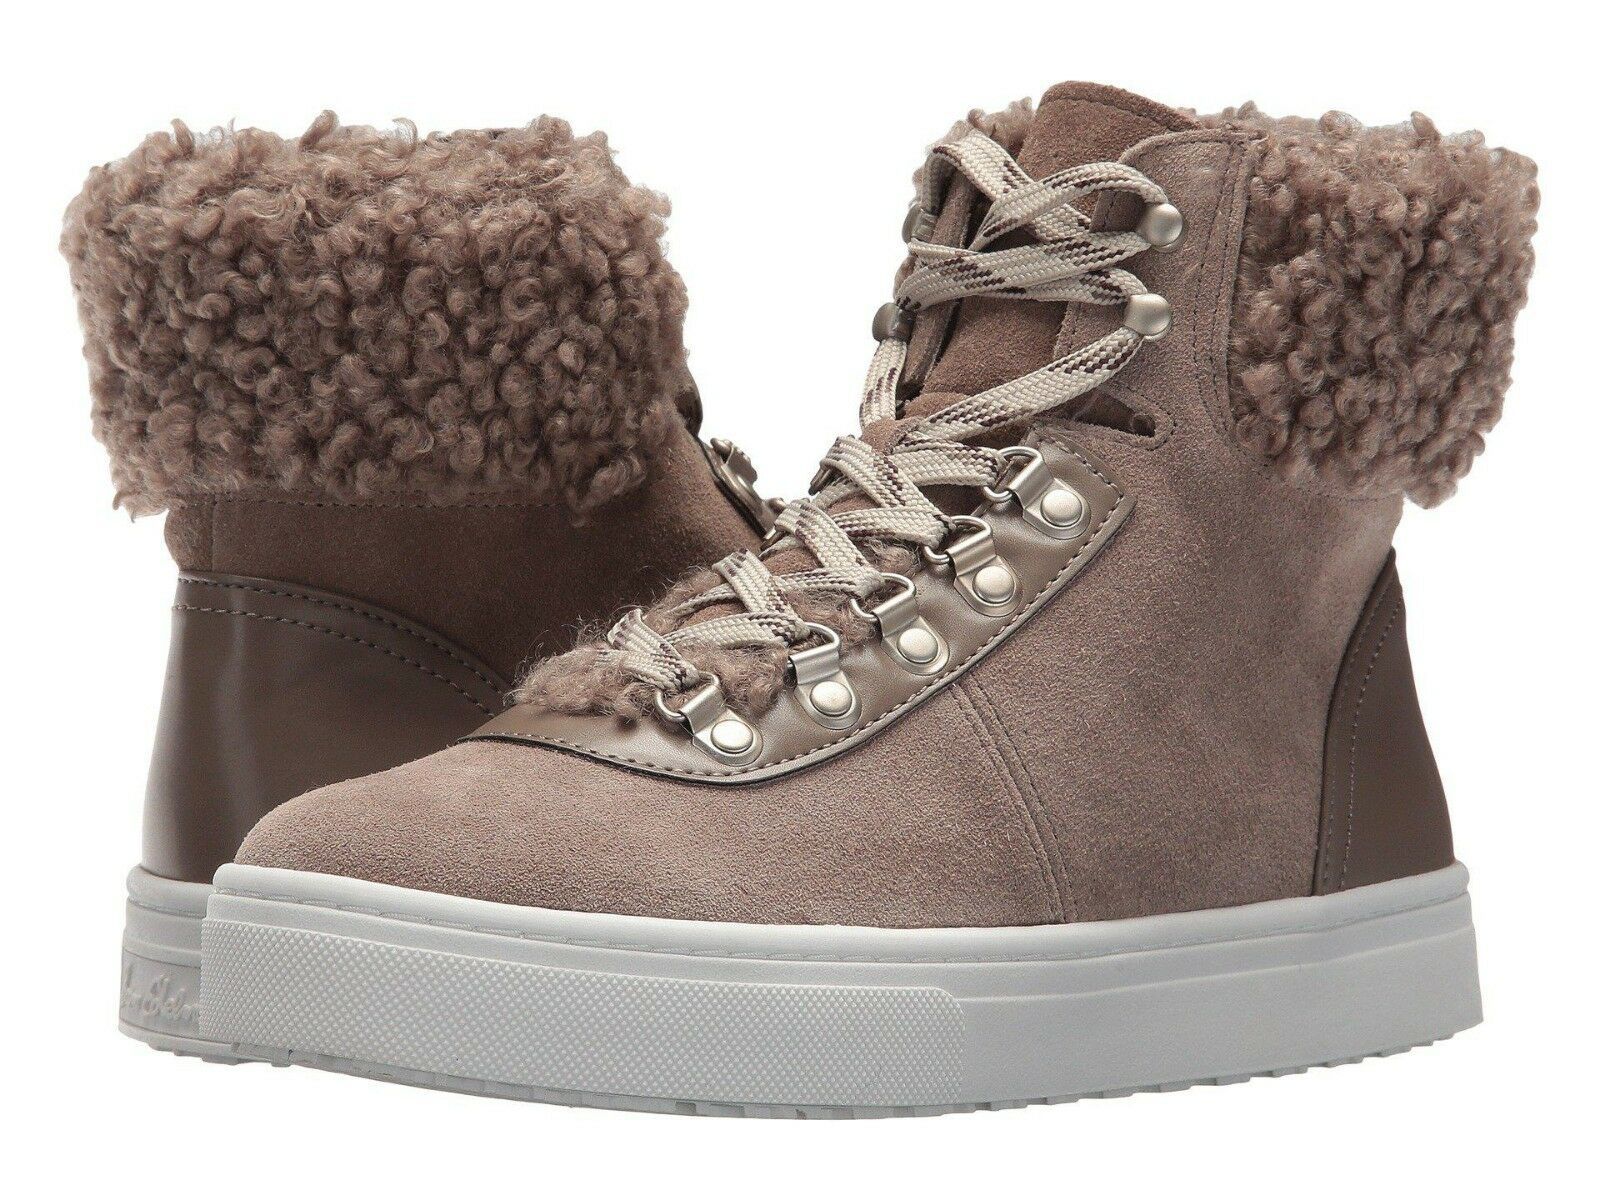 Sam Edelman Luther Womens Size 8M Putty Suede Faux Shearling Sneaker Booties New